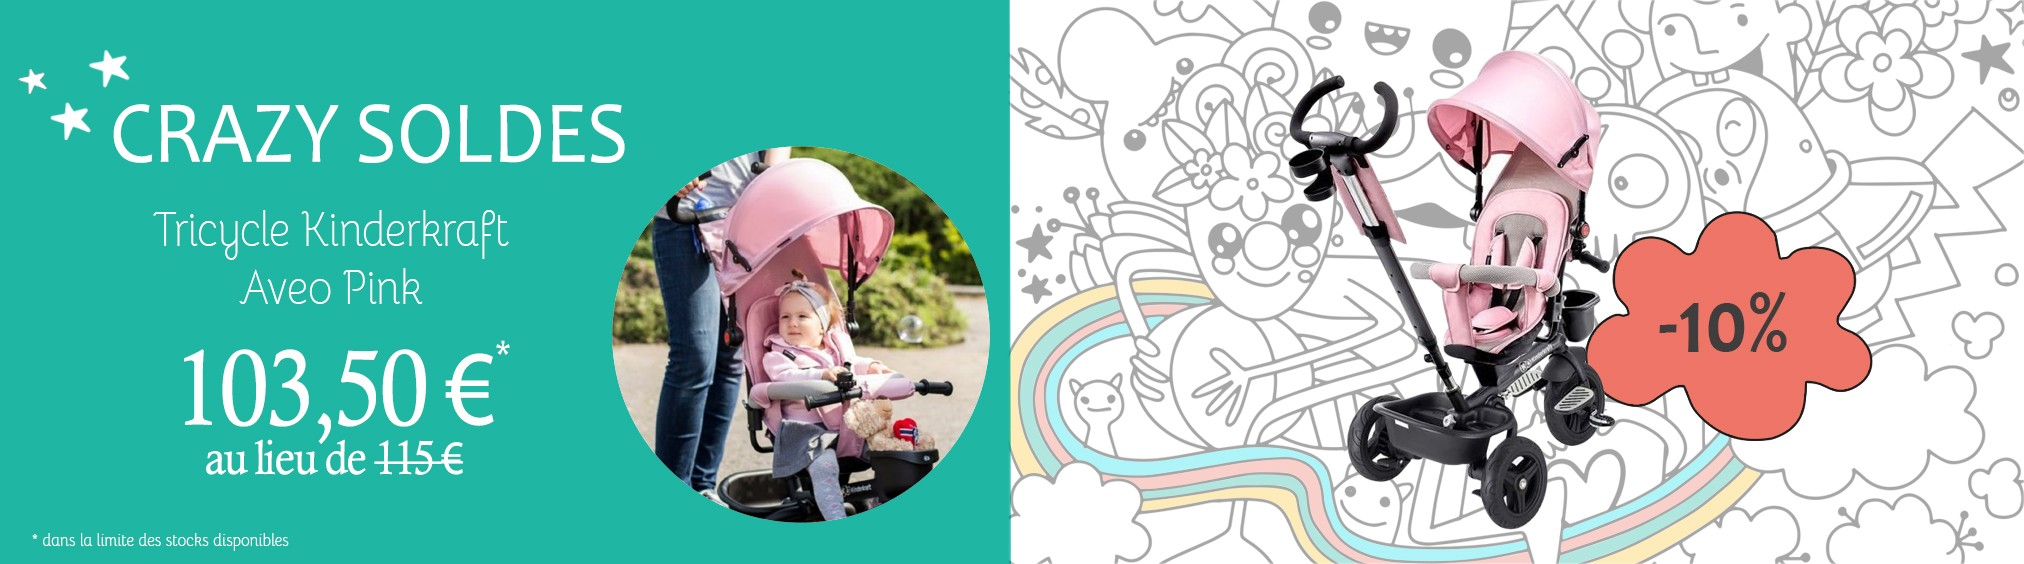 Tricycle Kinderkraft Aveo pink